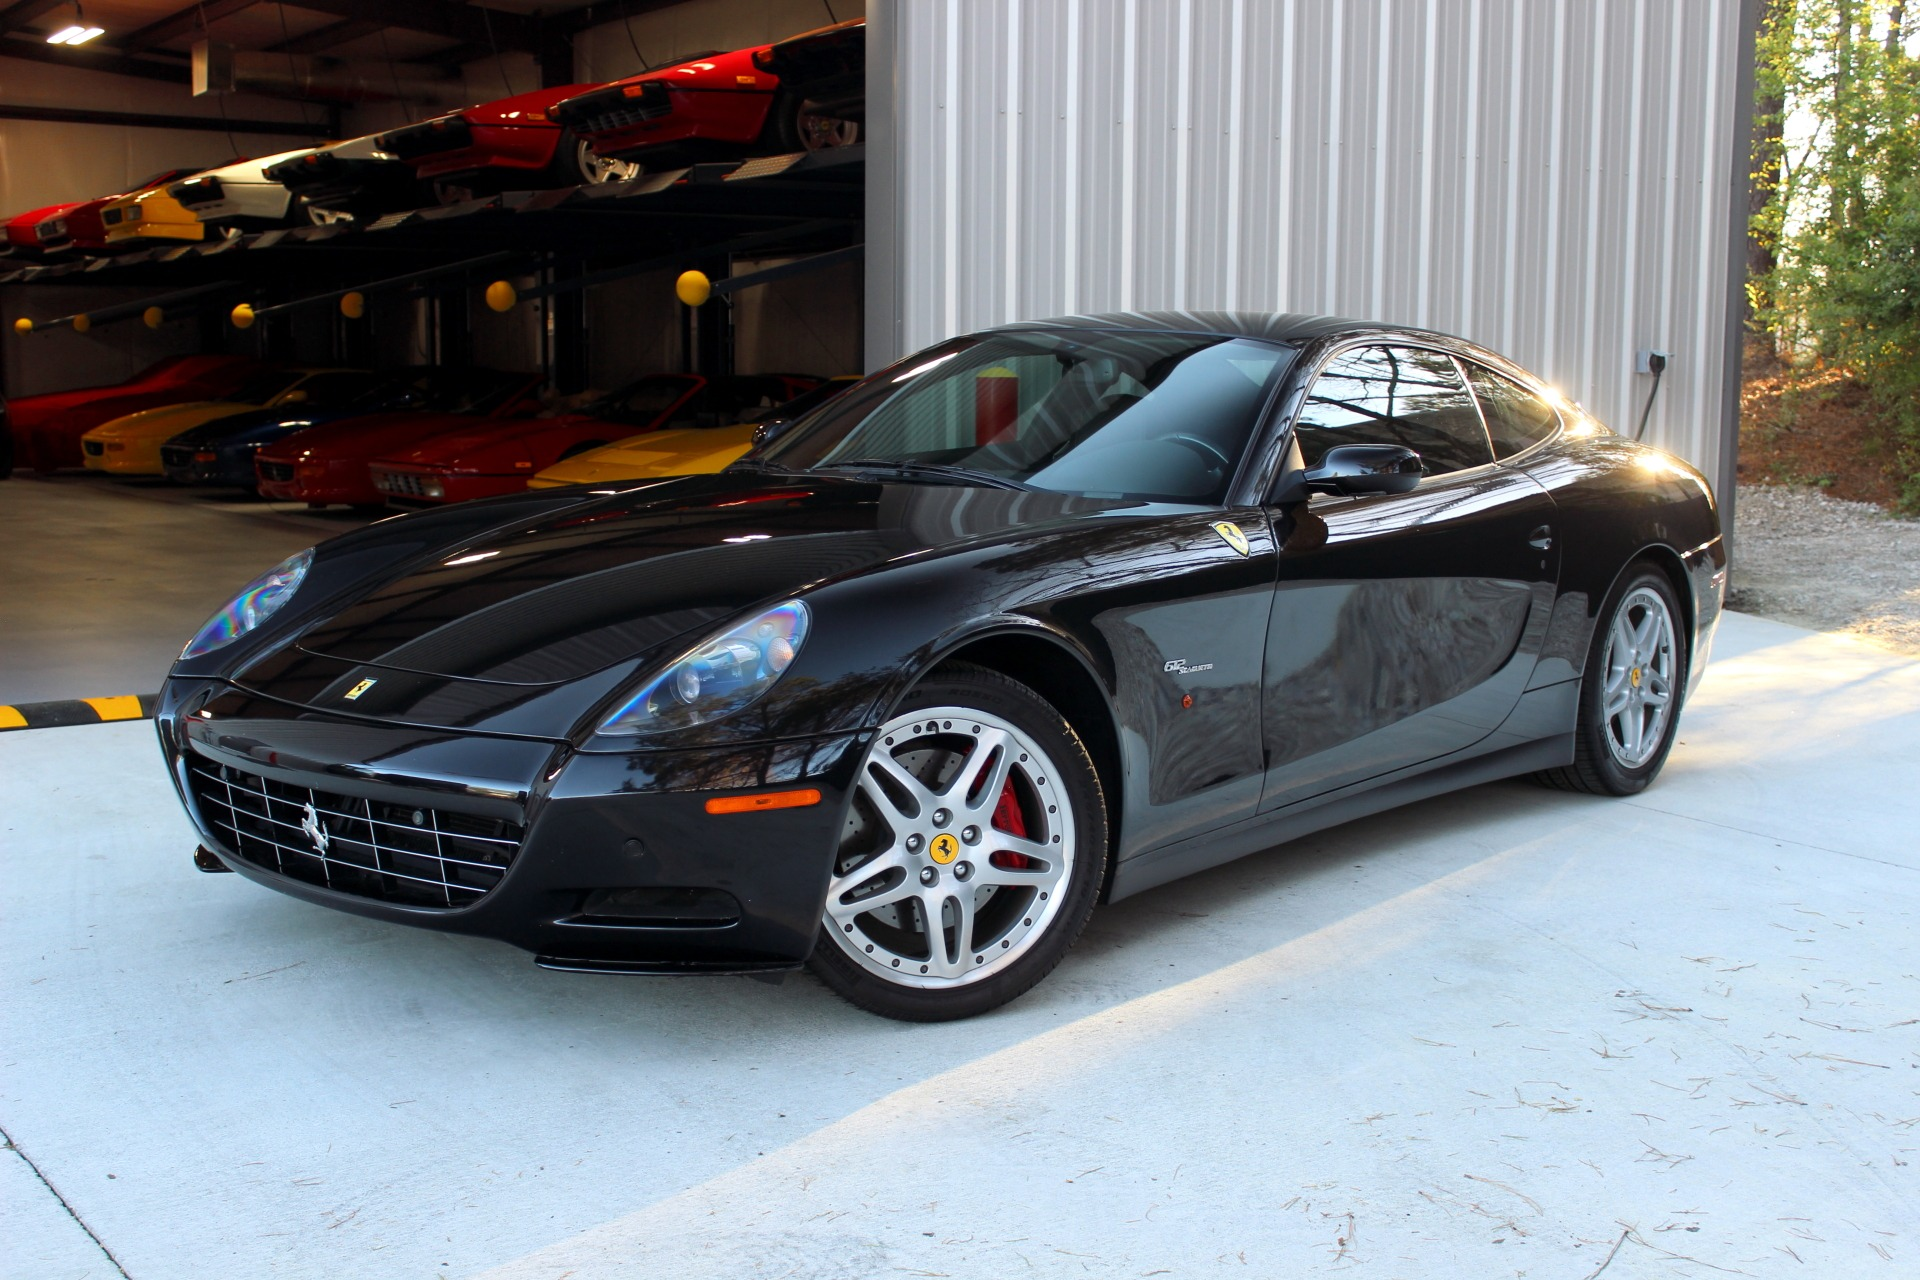 used 2006 ferrari 612 scaglietti nero daytona coupe v12 5. Black Bedroom Furniture Sets. Home Design Ideas